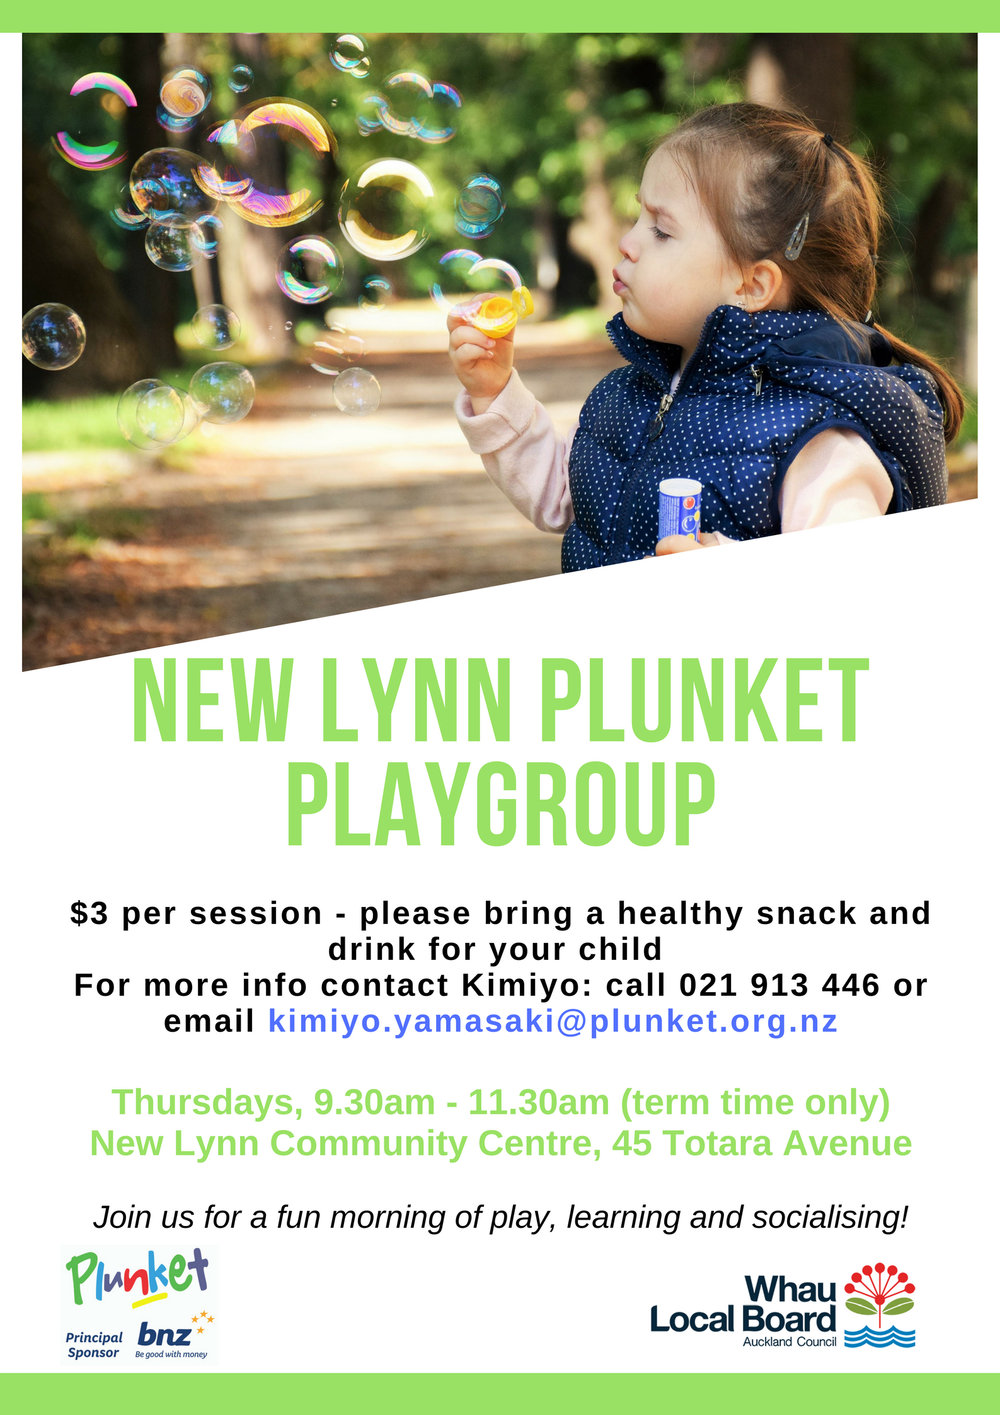 New Lynn Plunket Playgroup.jpg